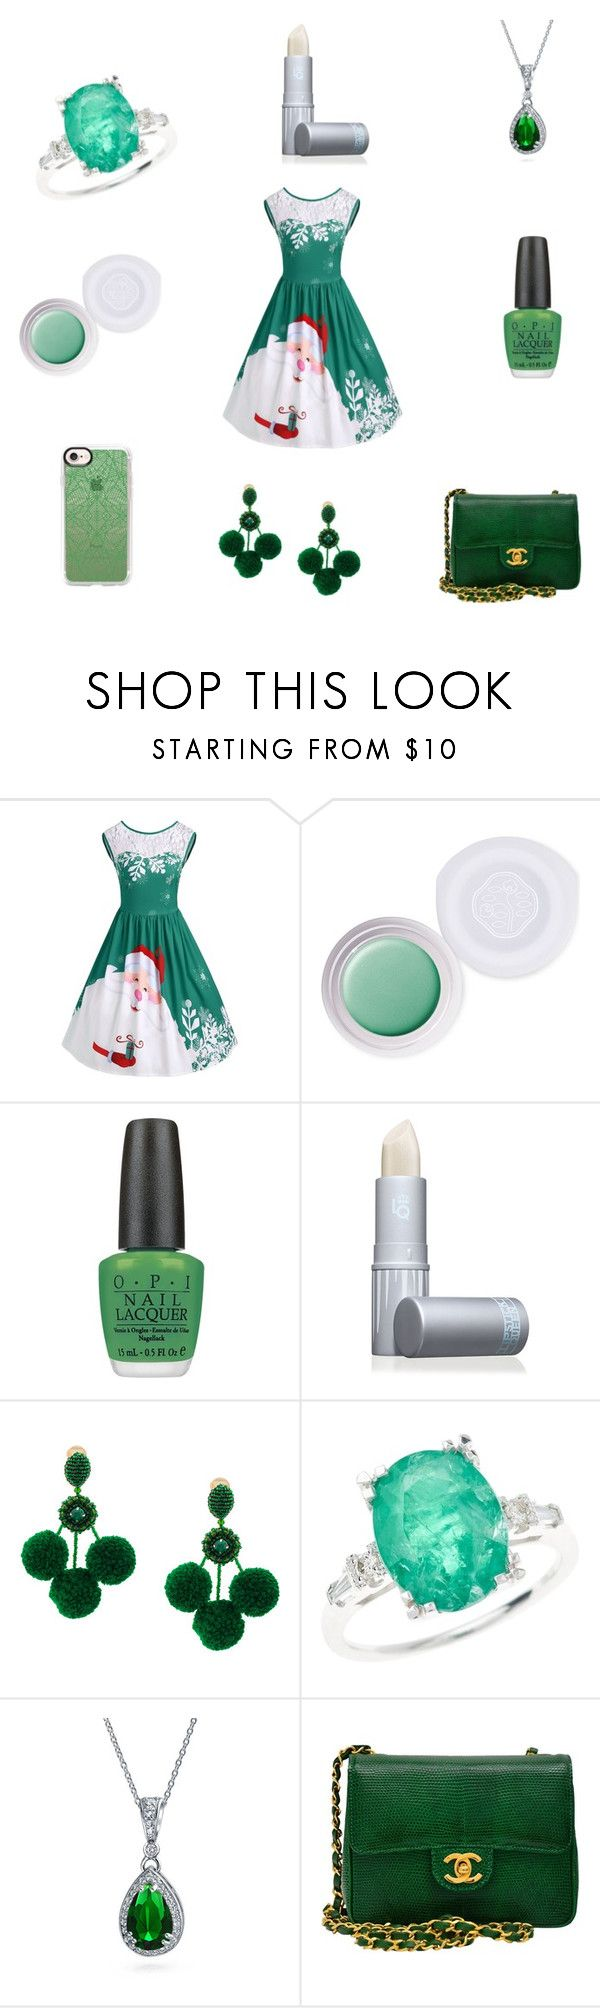 """""""Christmas"""" by katiephan on Polyvore featuring Shiseido, Lipstick Queen, Oscar de la Renta, Bling Jewelry, Chanel, Casetify, Christmas, white, GREEN and expressyourstyle"""